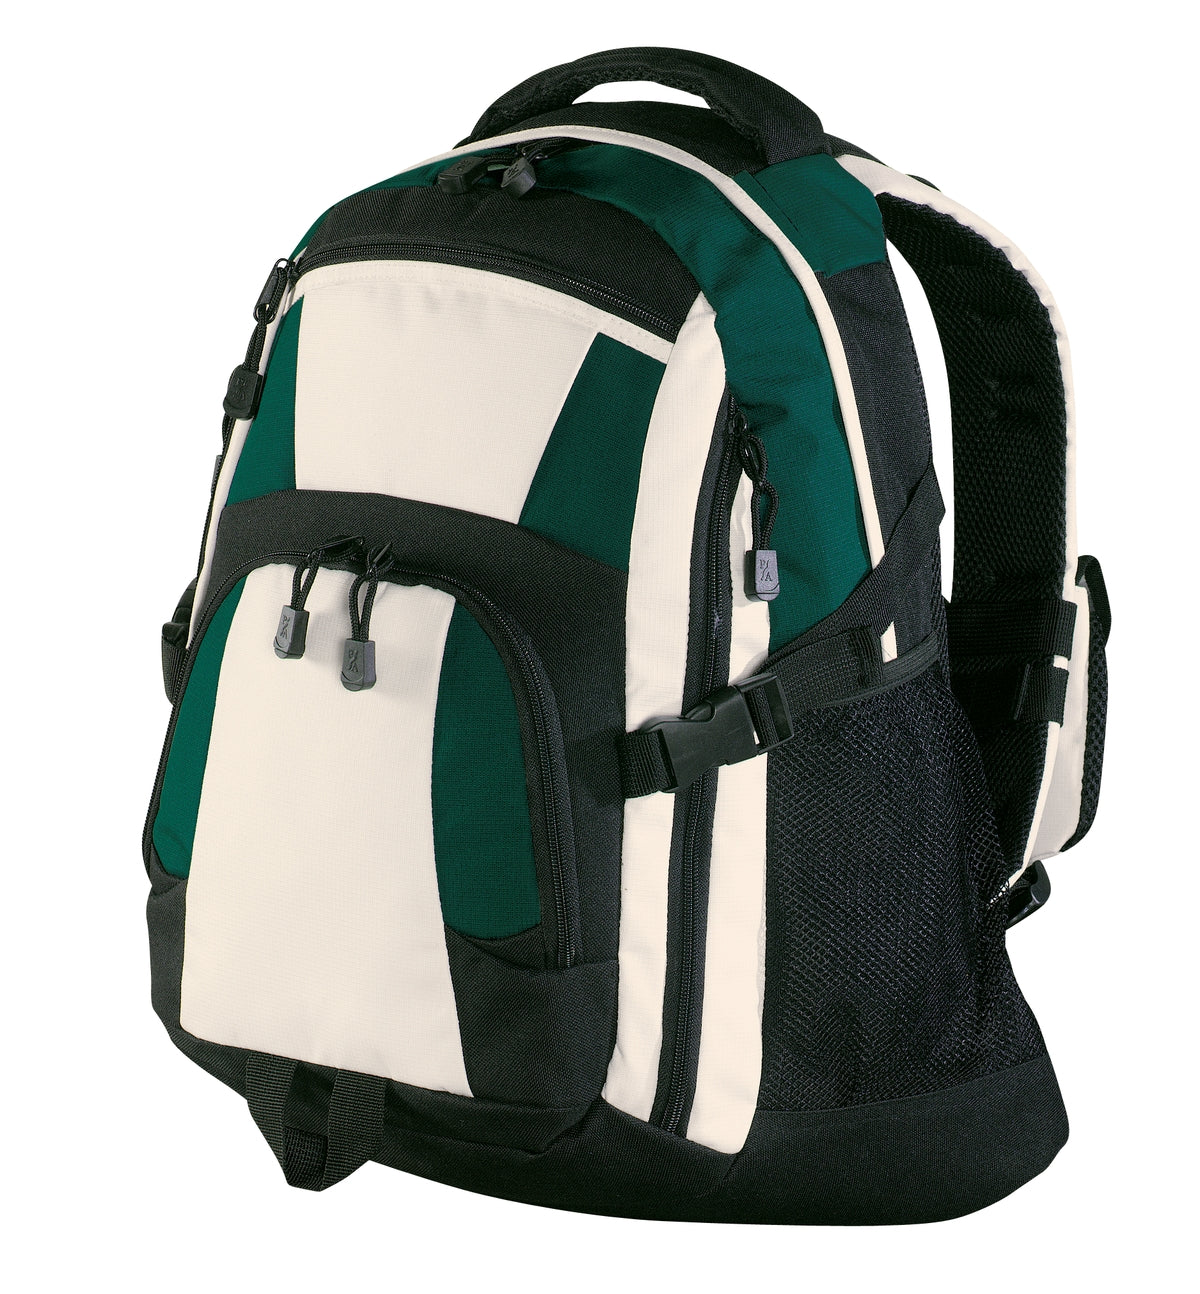 Port Authority Urban Backpack. BG77